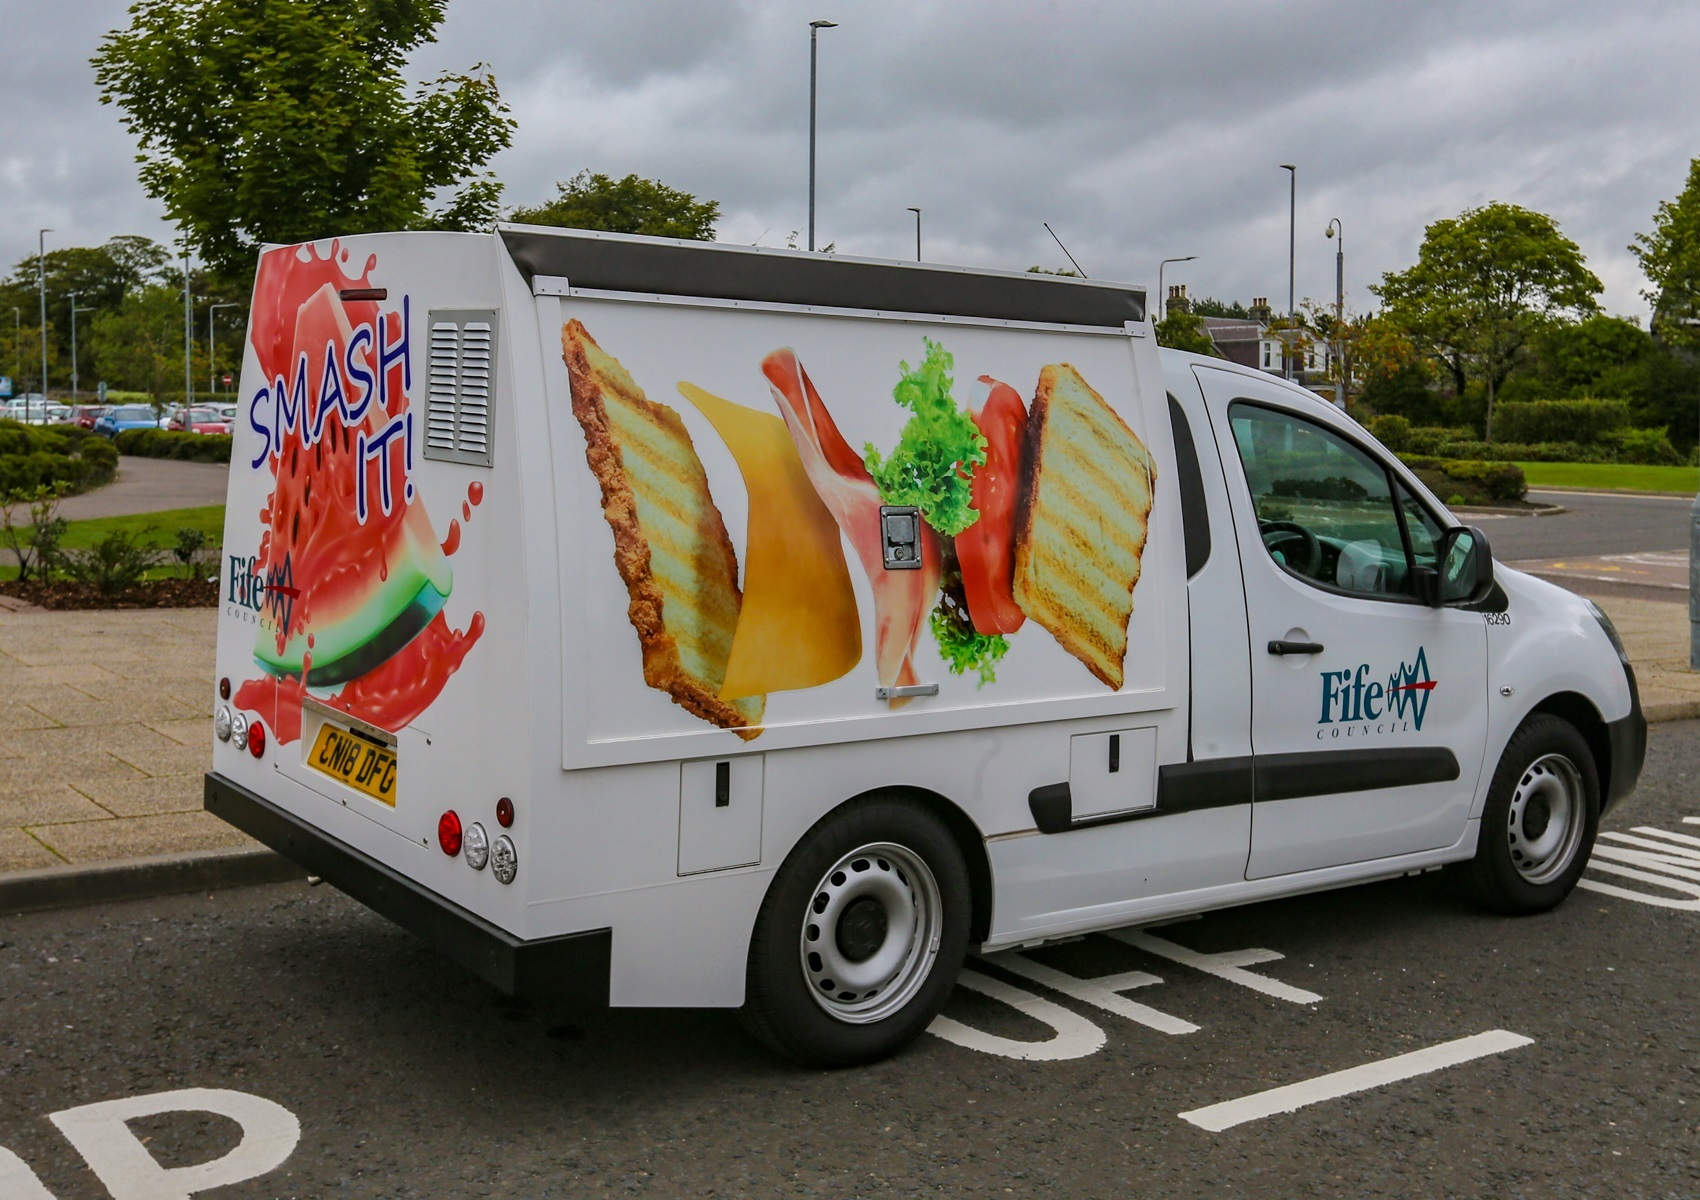 One of the vans